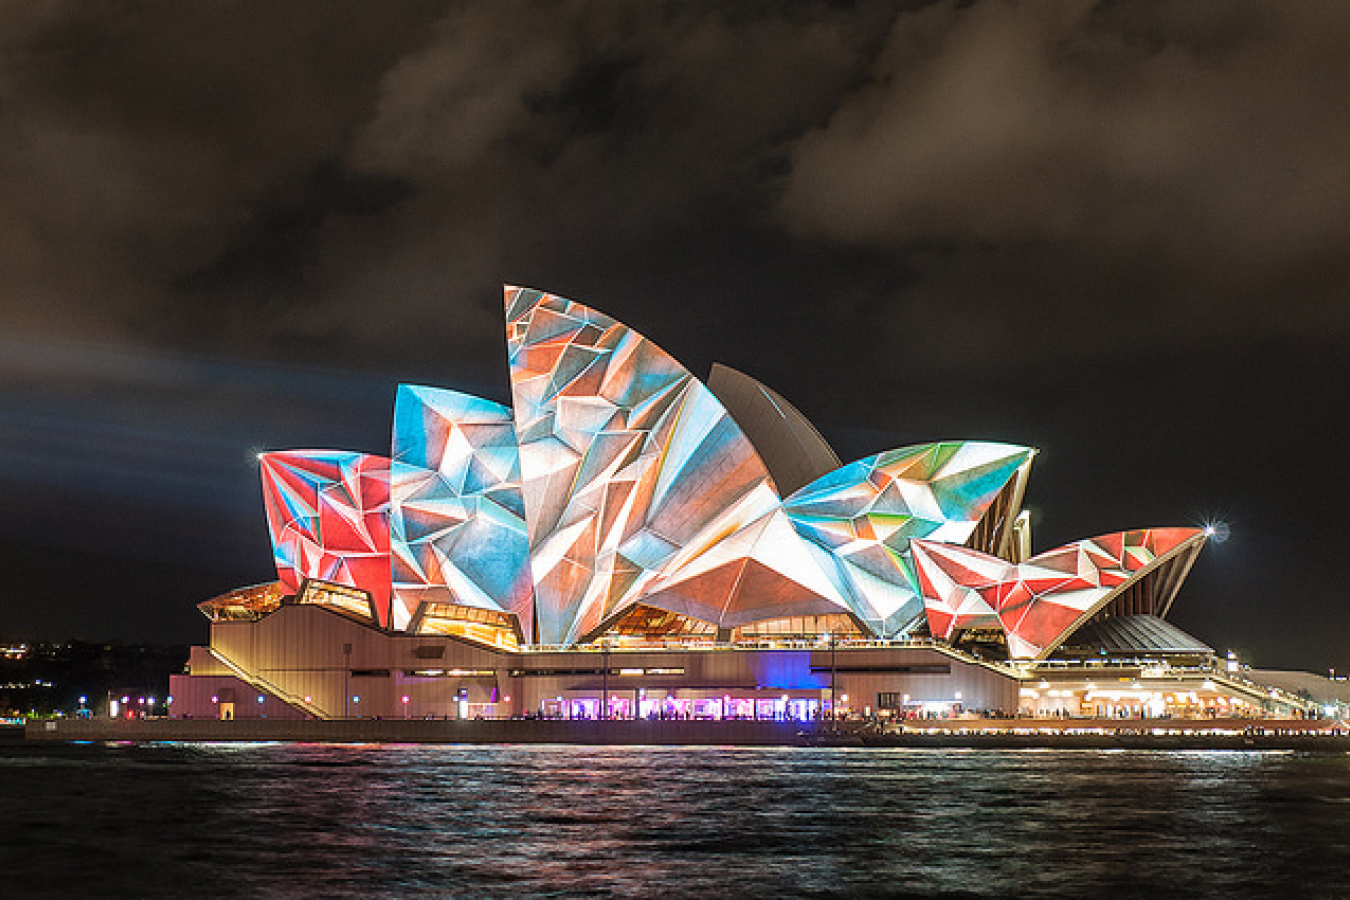 Sydney Opera House, Highlights of Vivid Sydney 2014, Australia